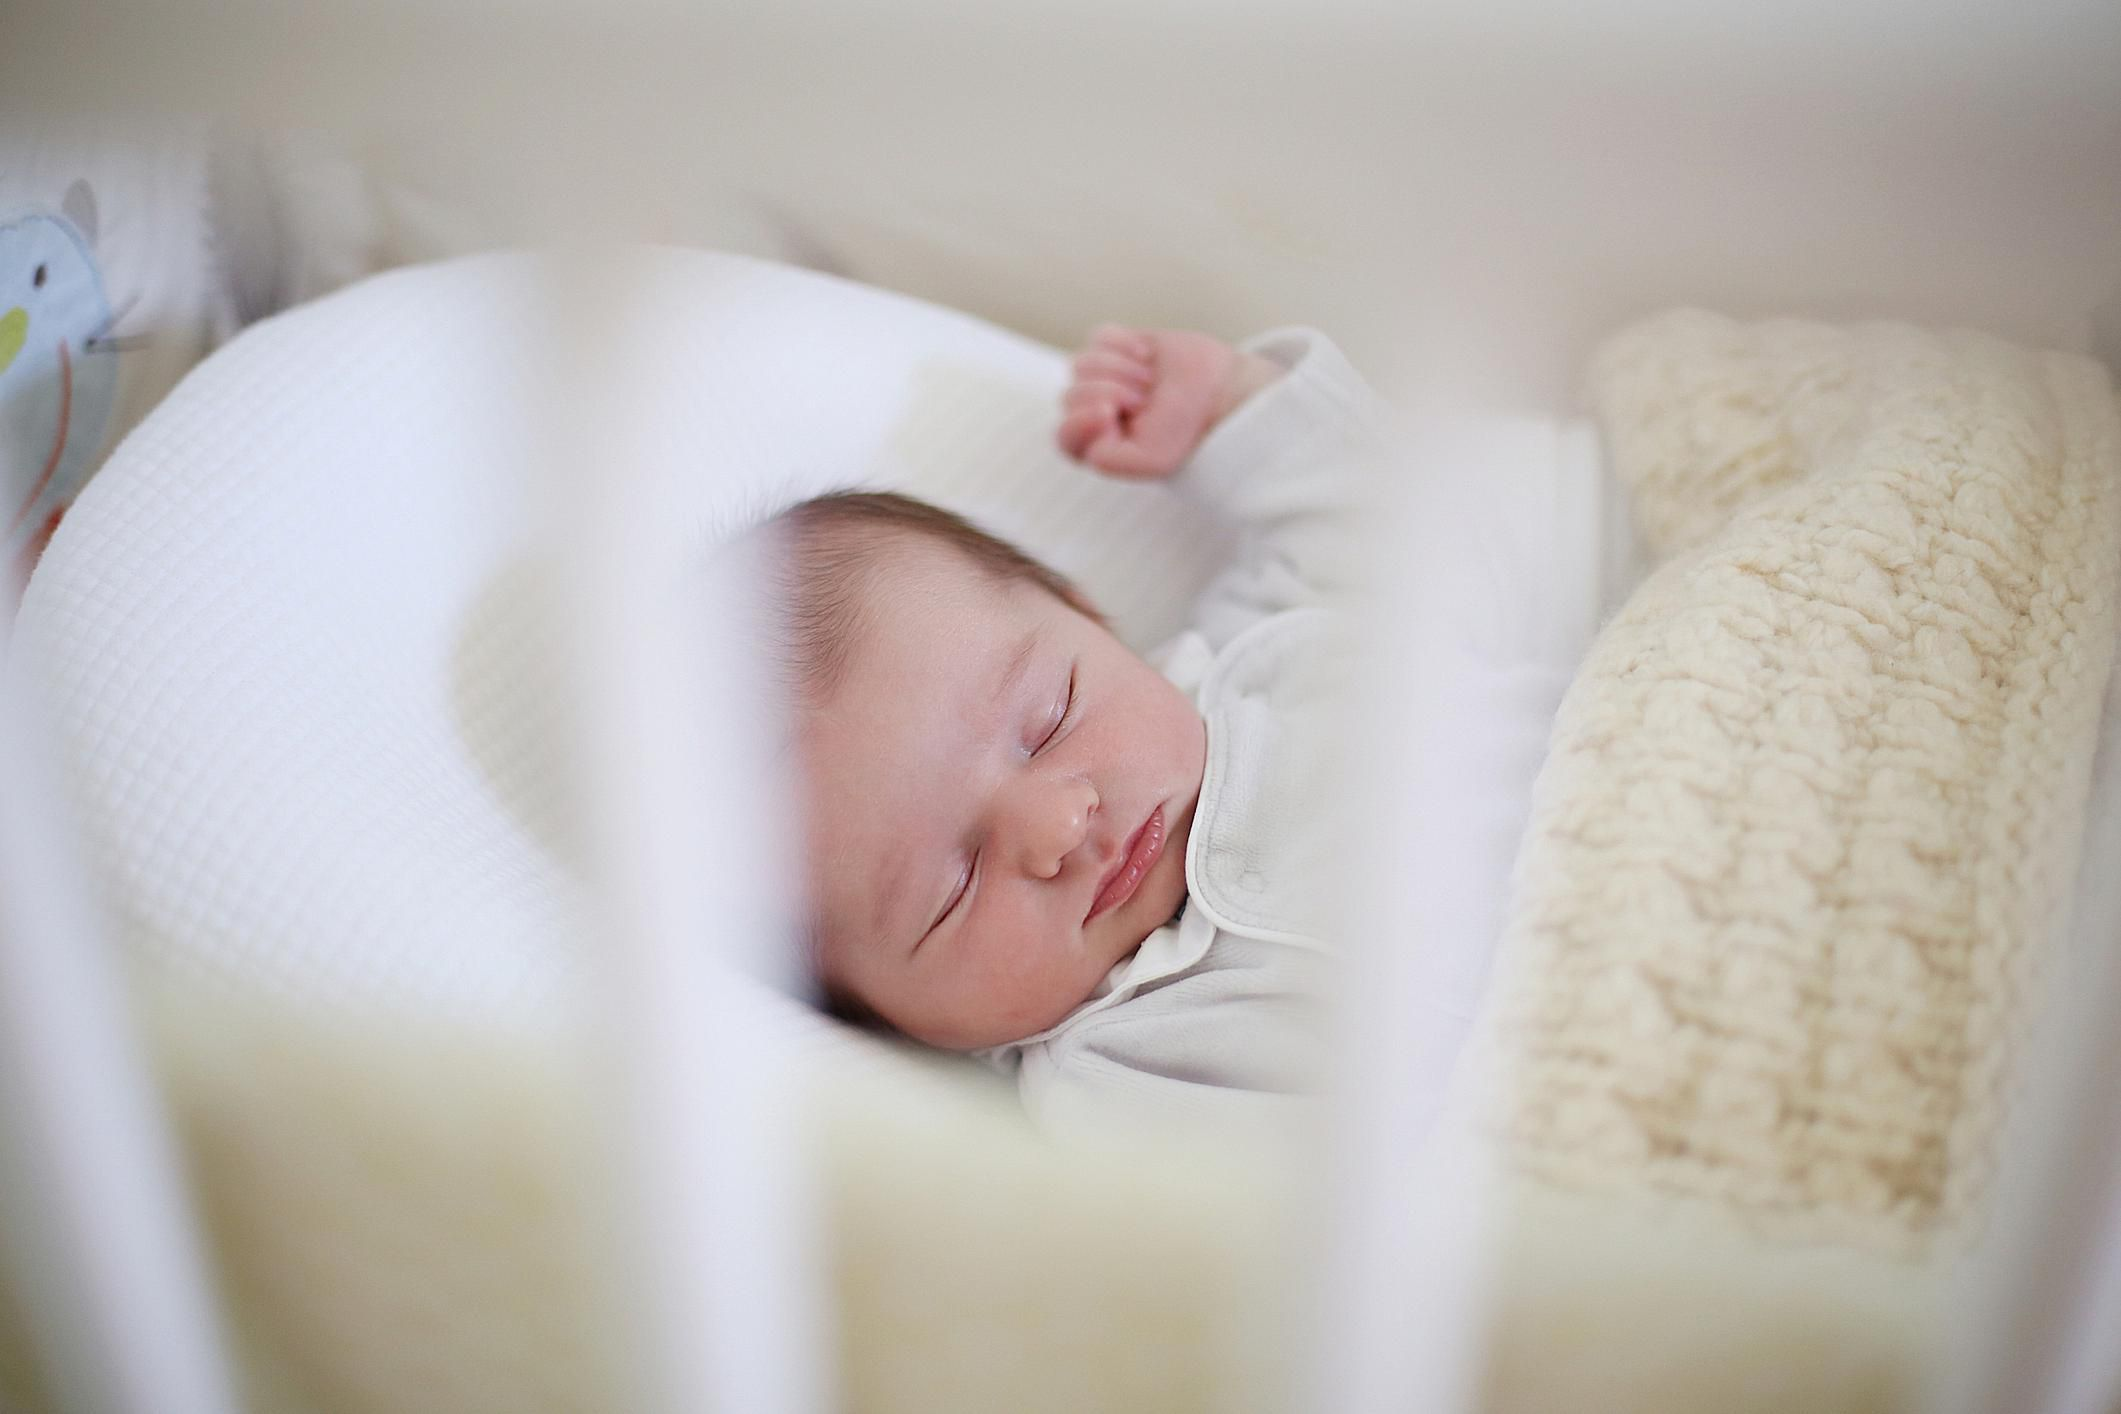 A Safety Warning On Infant Sleep Positioners